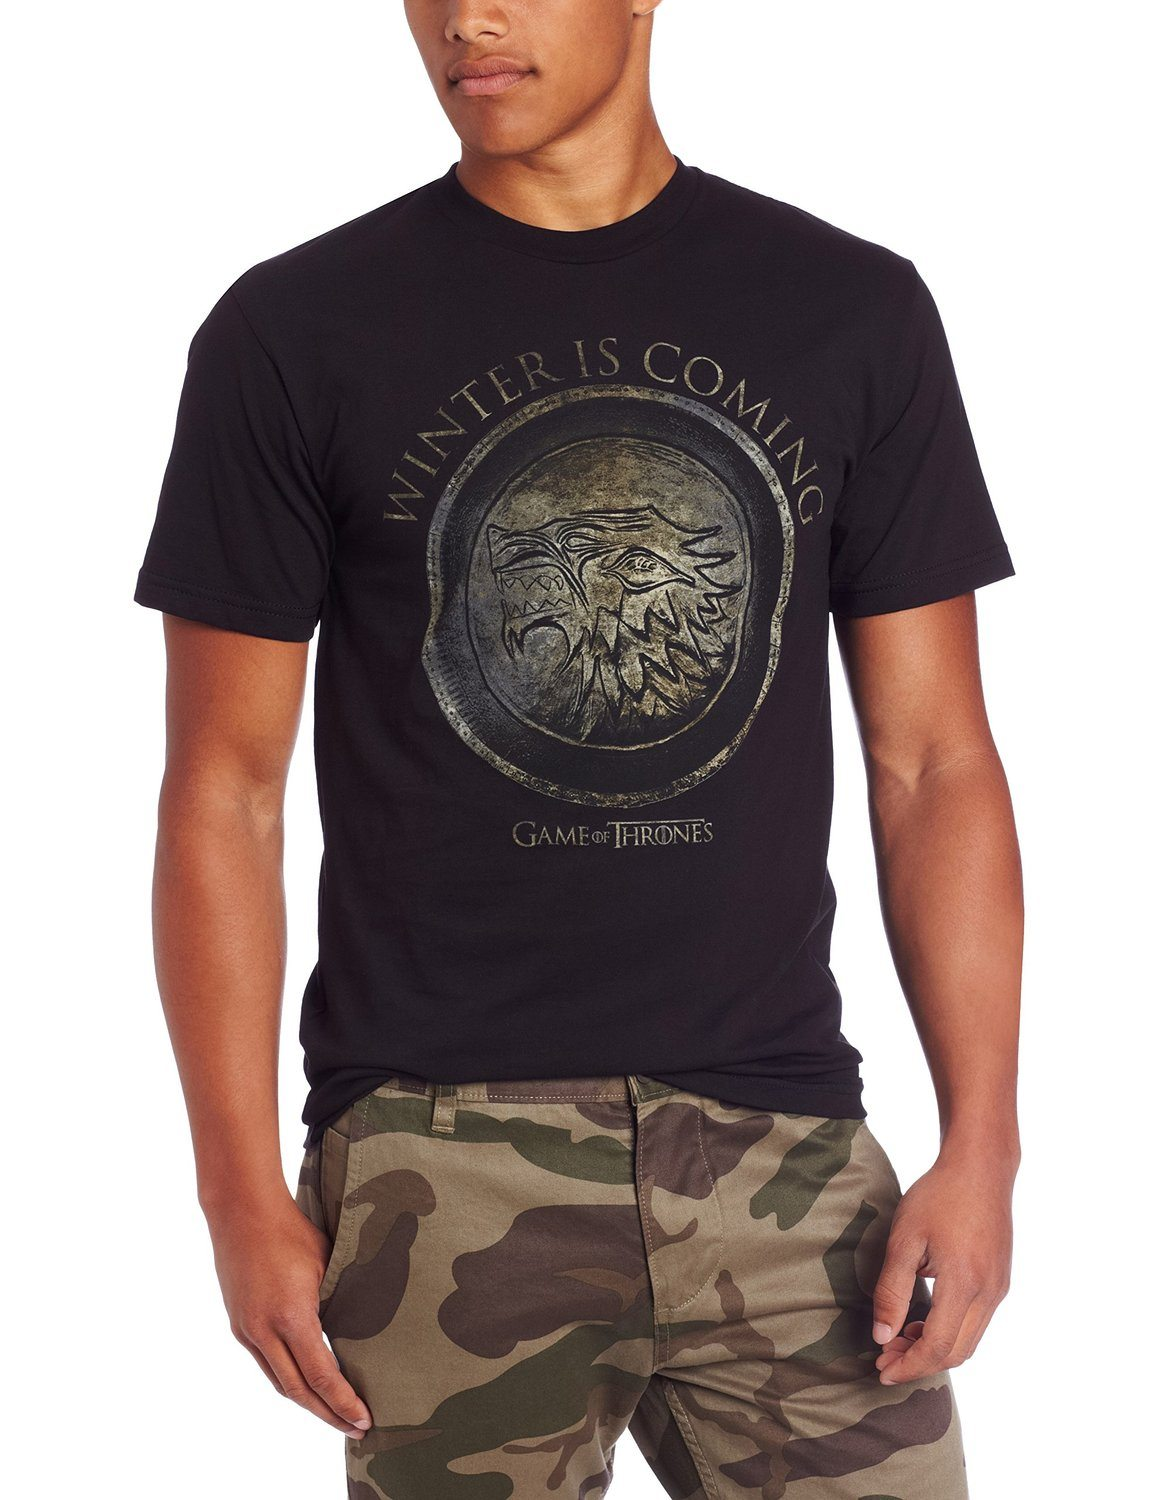 HBO'S Game of Thrones Men's Winter Is Coming Circle T-Shirt